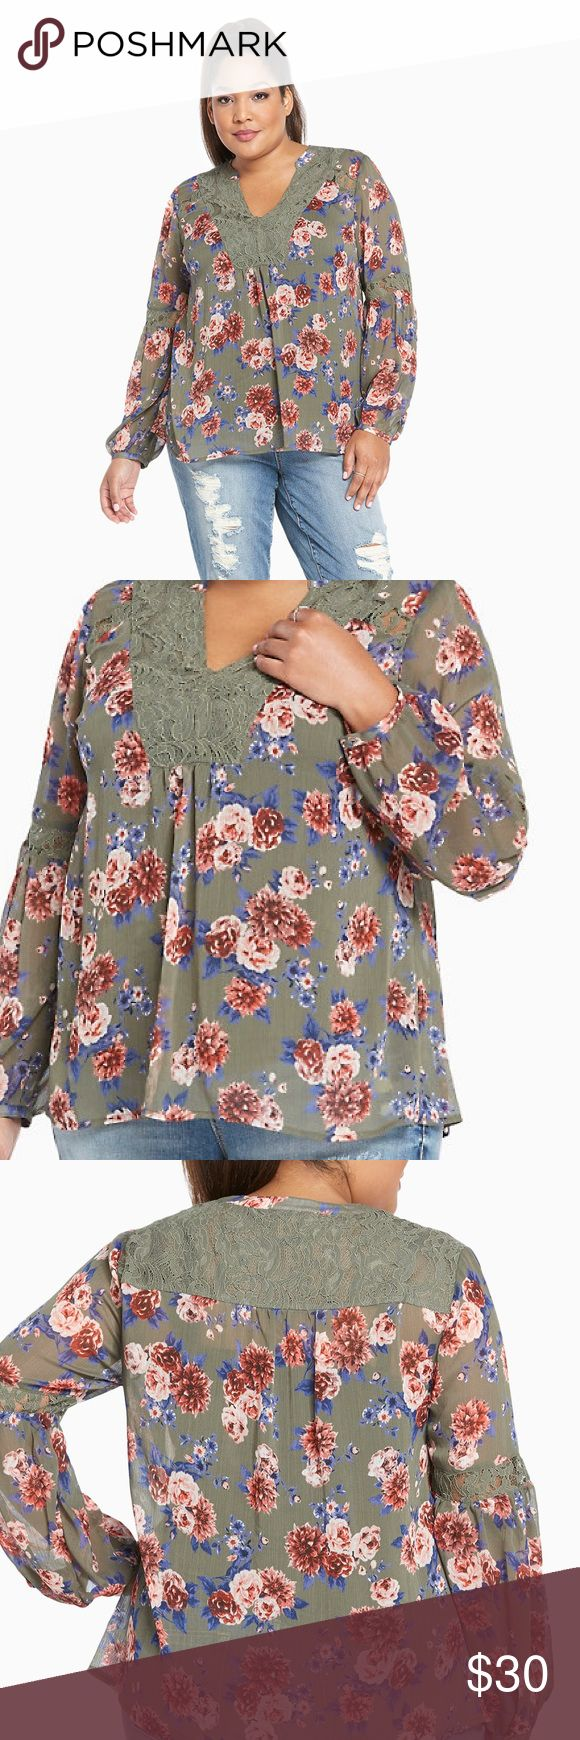 "Torrid Floral Print Chiffon Lace Inset Top ""Is this the real life? Is this just fantasy? This bohemian top is both. The sheer olive green chiffon is a floaty, airy must-have, while the blue and pink rose print is for the dreamers. Lace insets trim the v neck and bell sleeves, for a final ethereal touch. Polyester/nylon/rayon/cotton."" New with tags, size 2X. torrid Tops Blouses"